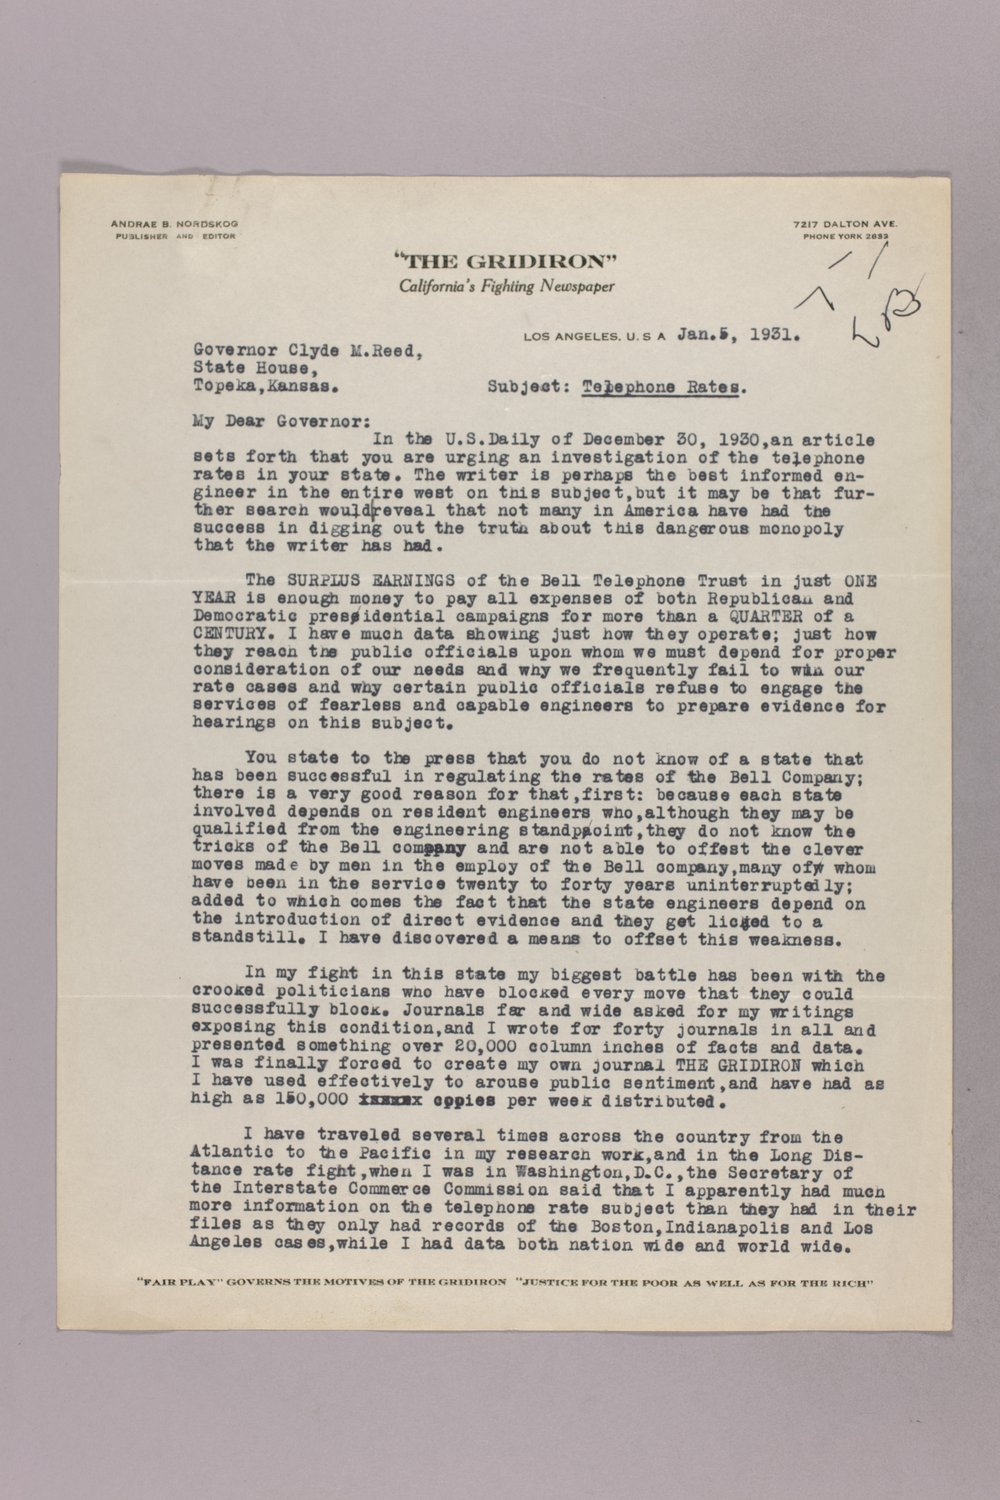 Governor Clyde M. Reed correspondence, Public Service Commission - 11